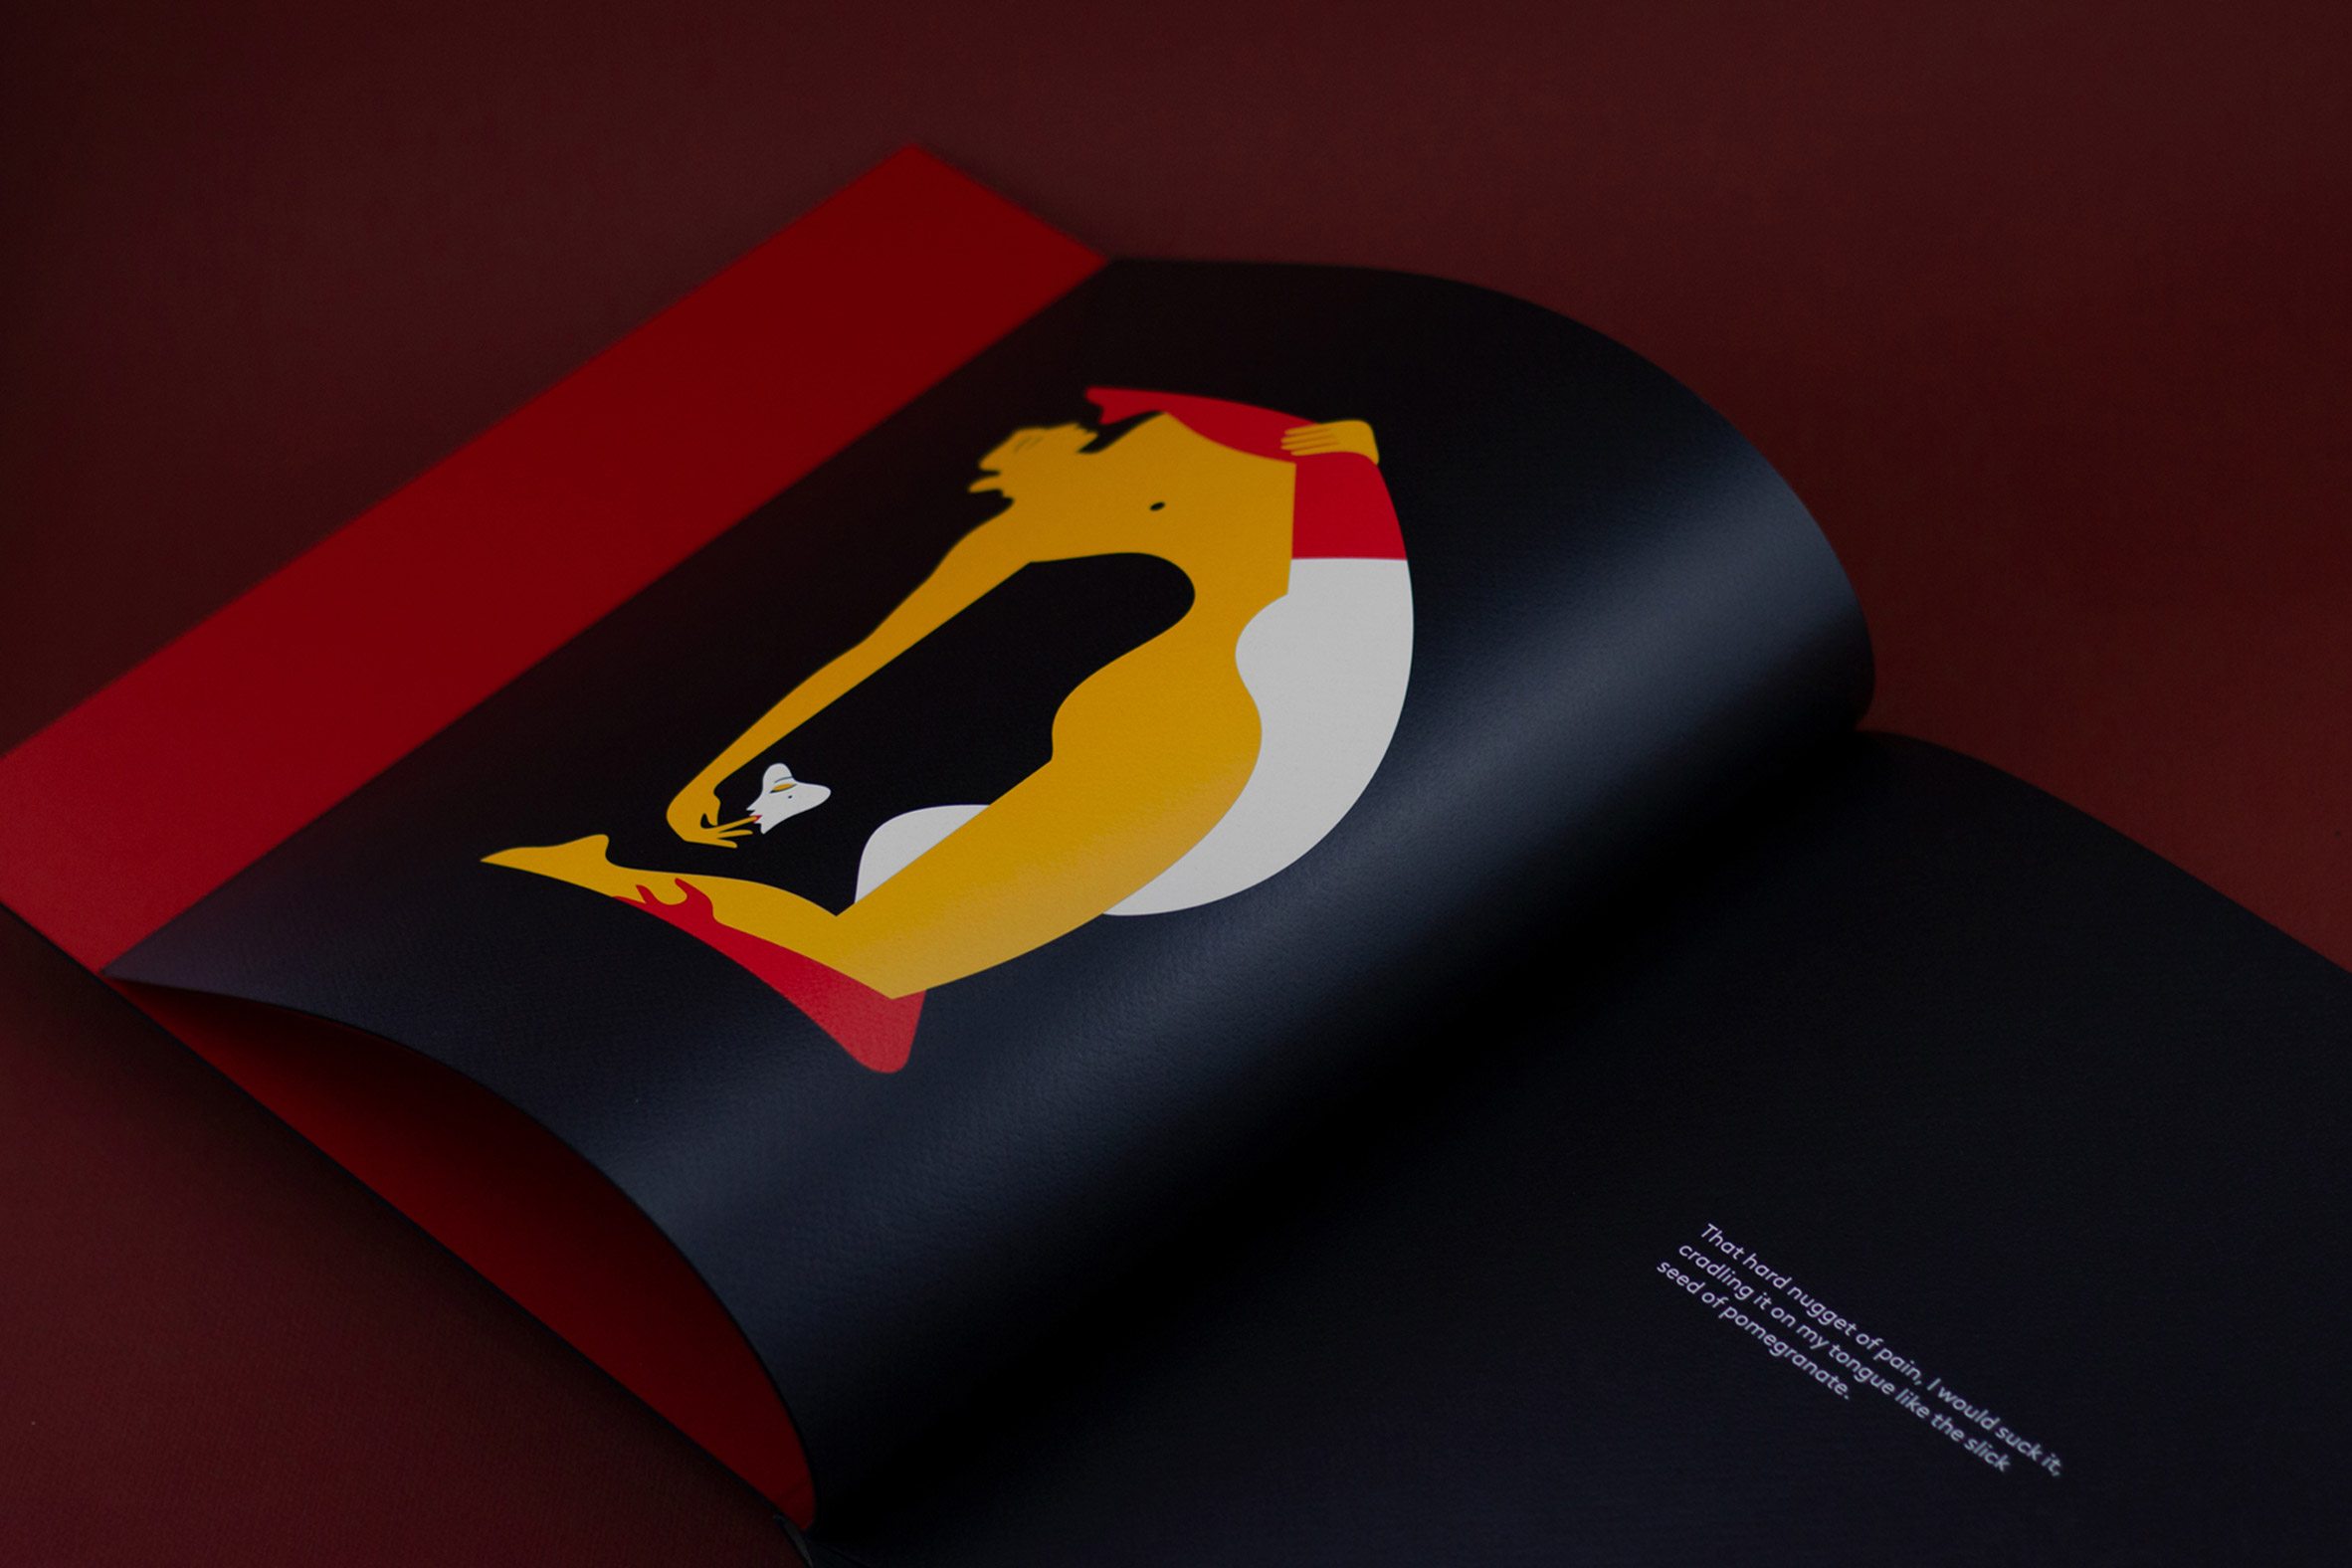 Letter D from Malika Favre's book Kama Sutra A-Z